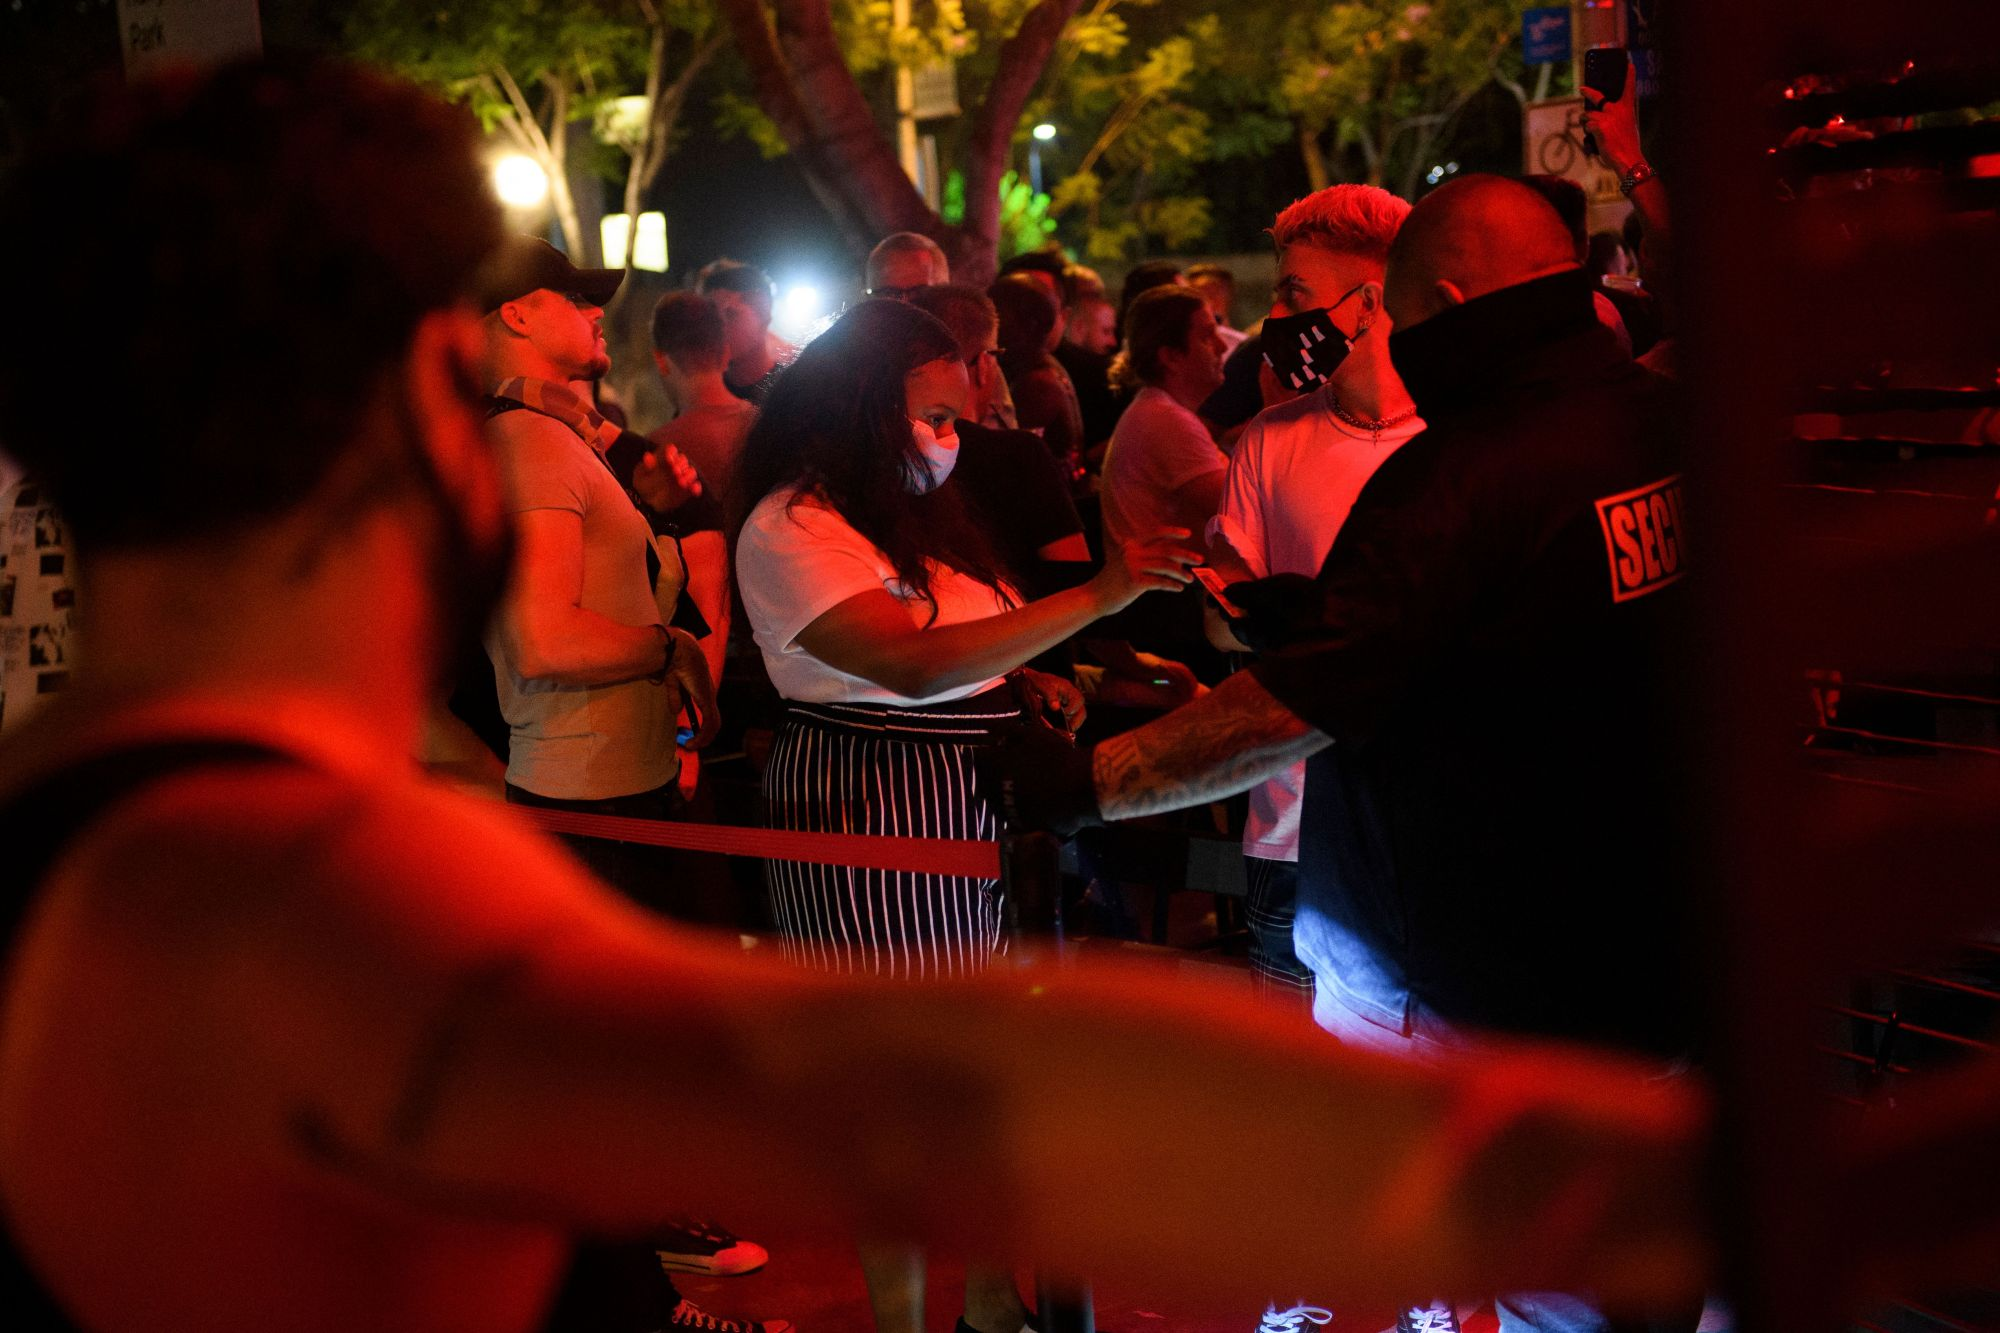 Customers are required by security to wear face masks to enter a bar in West Hollywood on July 18, 2021. (Patrick T. Fallon / AFP / Getty Images)